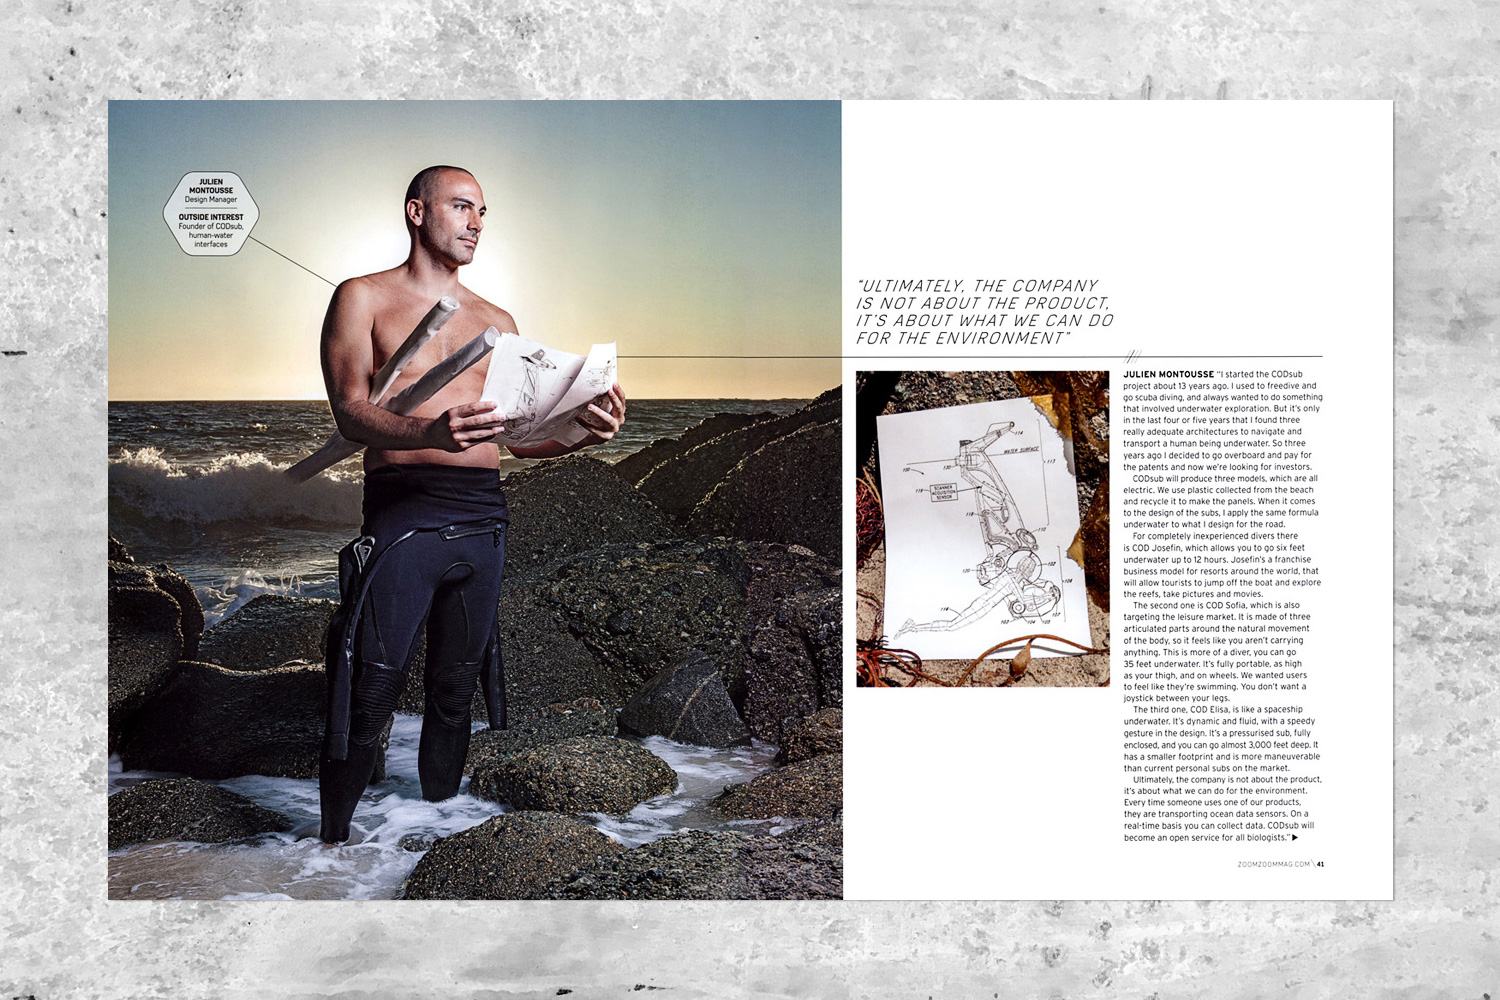 PATRICK STRATTNER PHOTOGRAPHY | TEAR SHEETS | Meet the makers / Zoom Zoom Magazine.